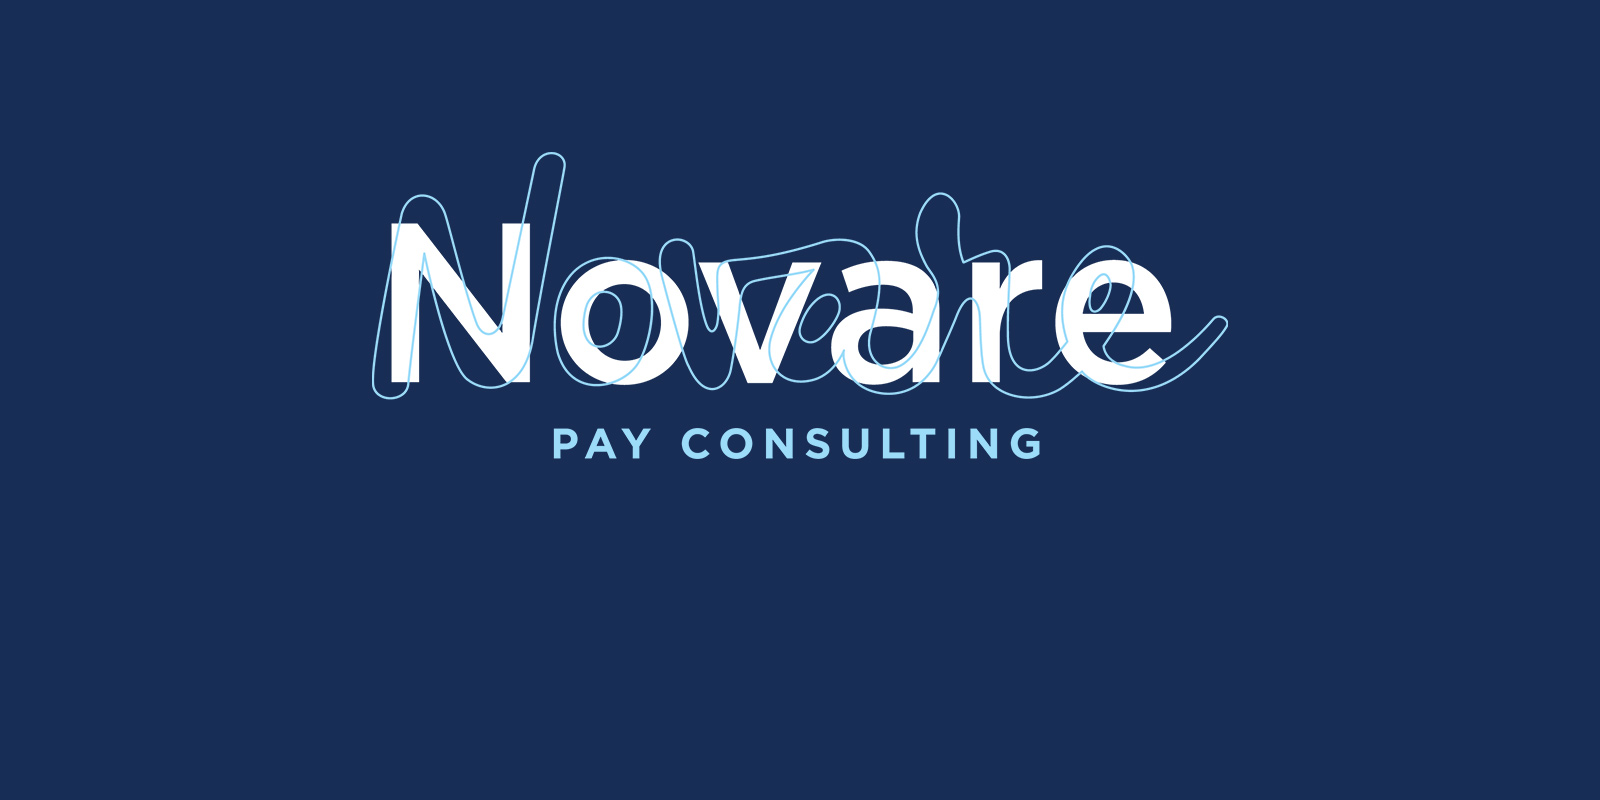 Novare Pay Consulting logo blue